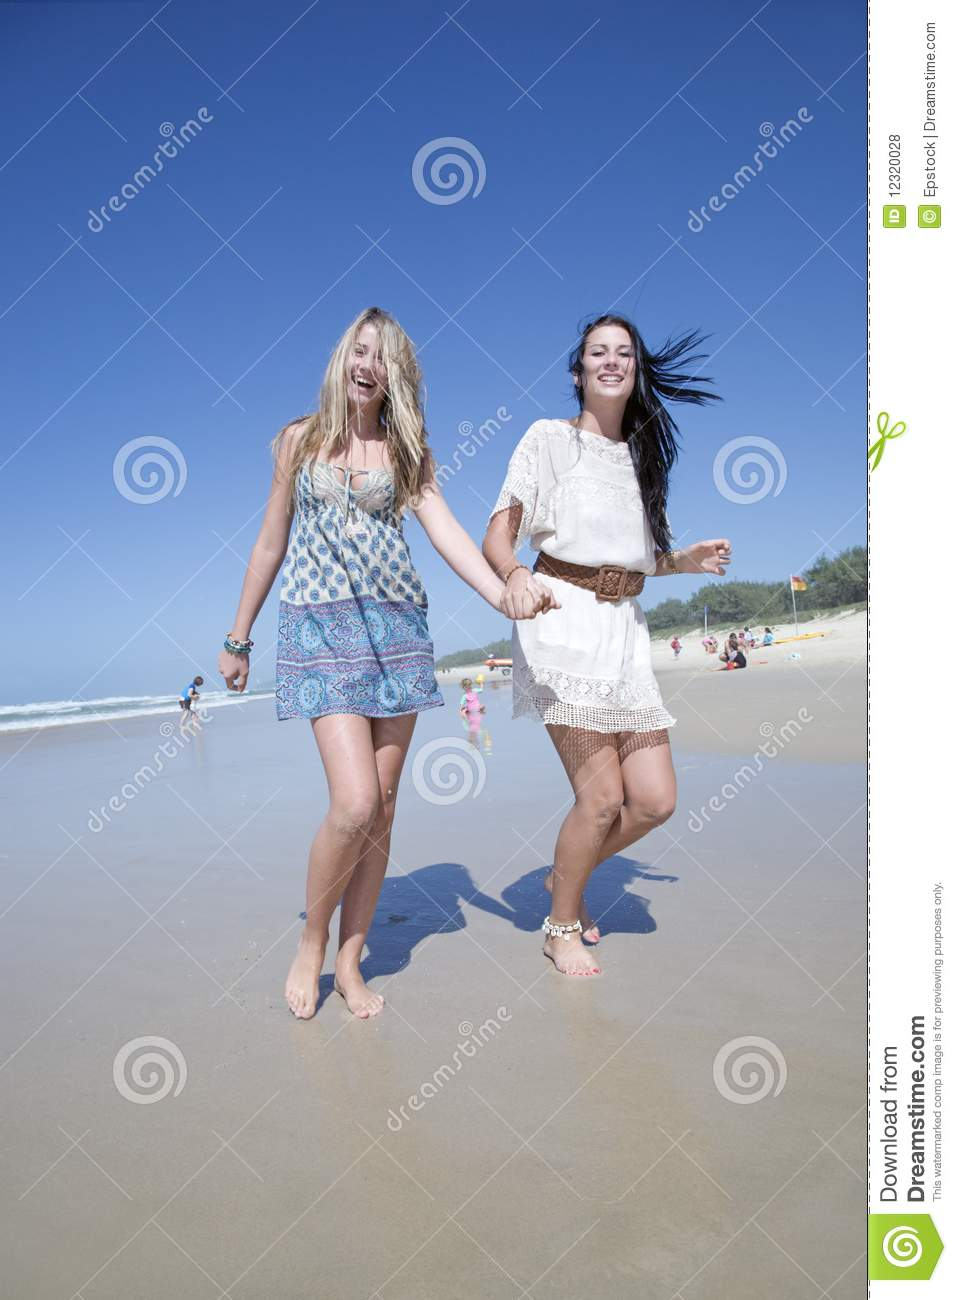 Two sisters running and laughing on beach holding hands Two Sisters Holding Hands